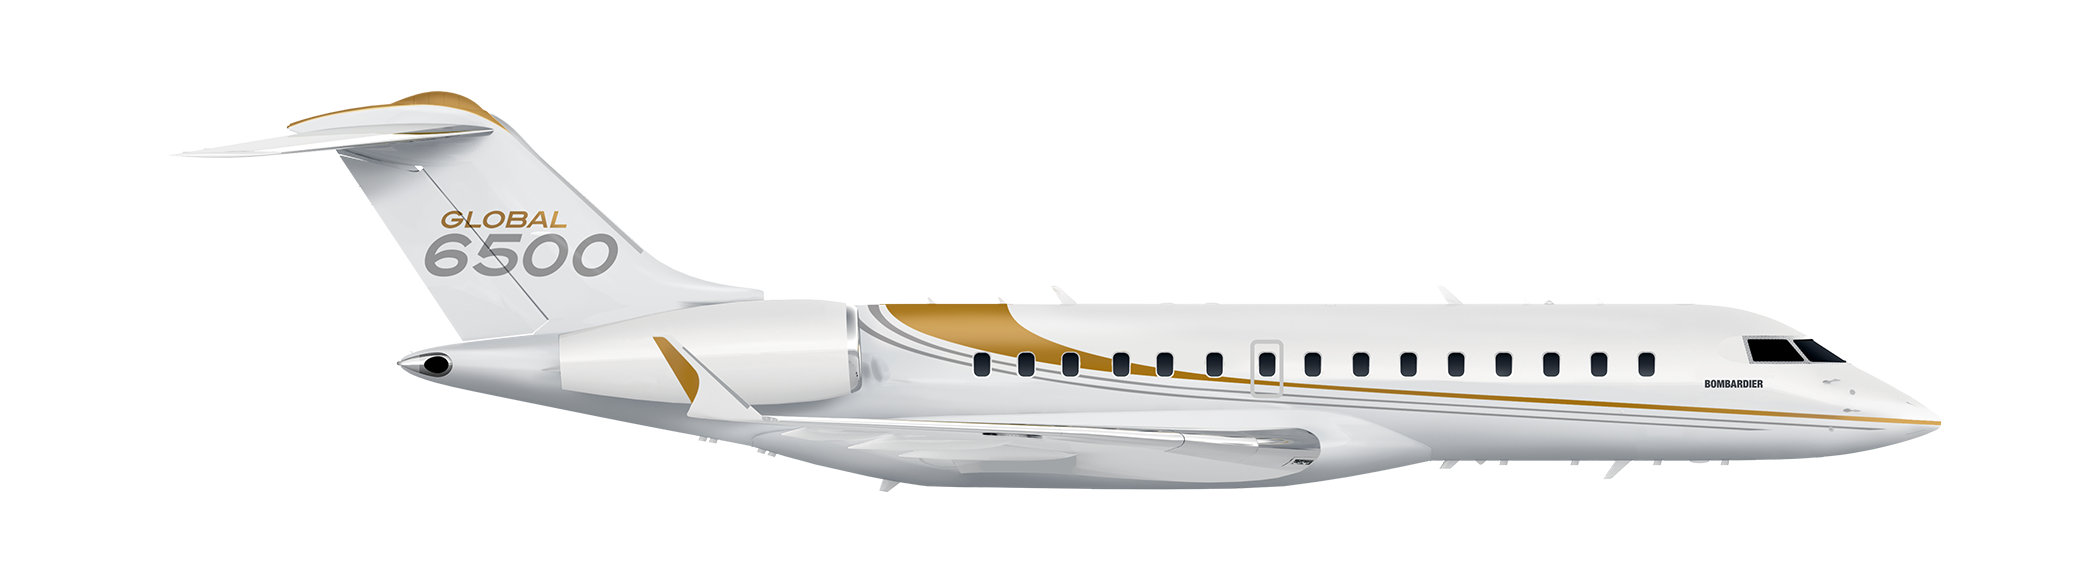 Global 6500 side silhouette